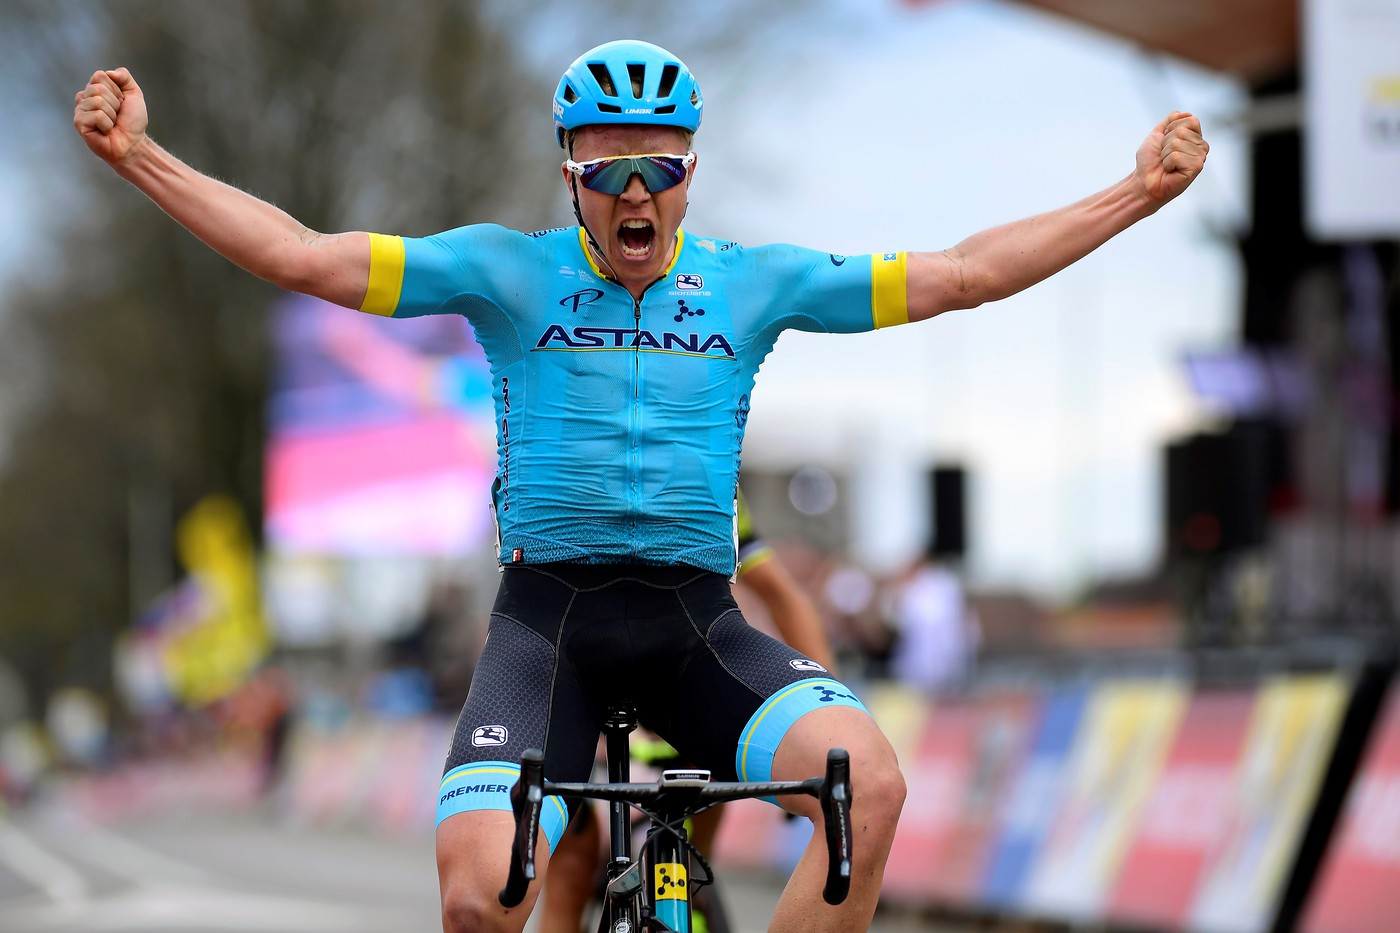 Valgren wins Amstel Gold